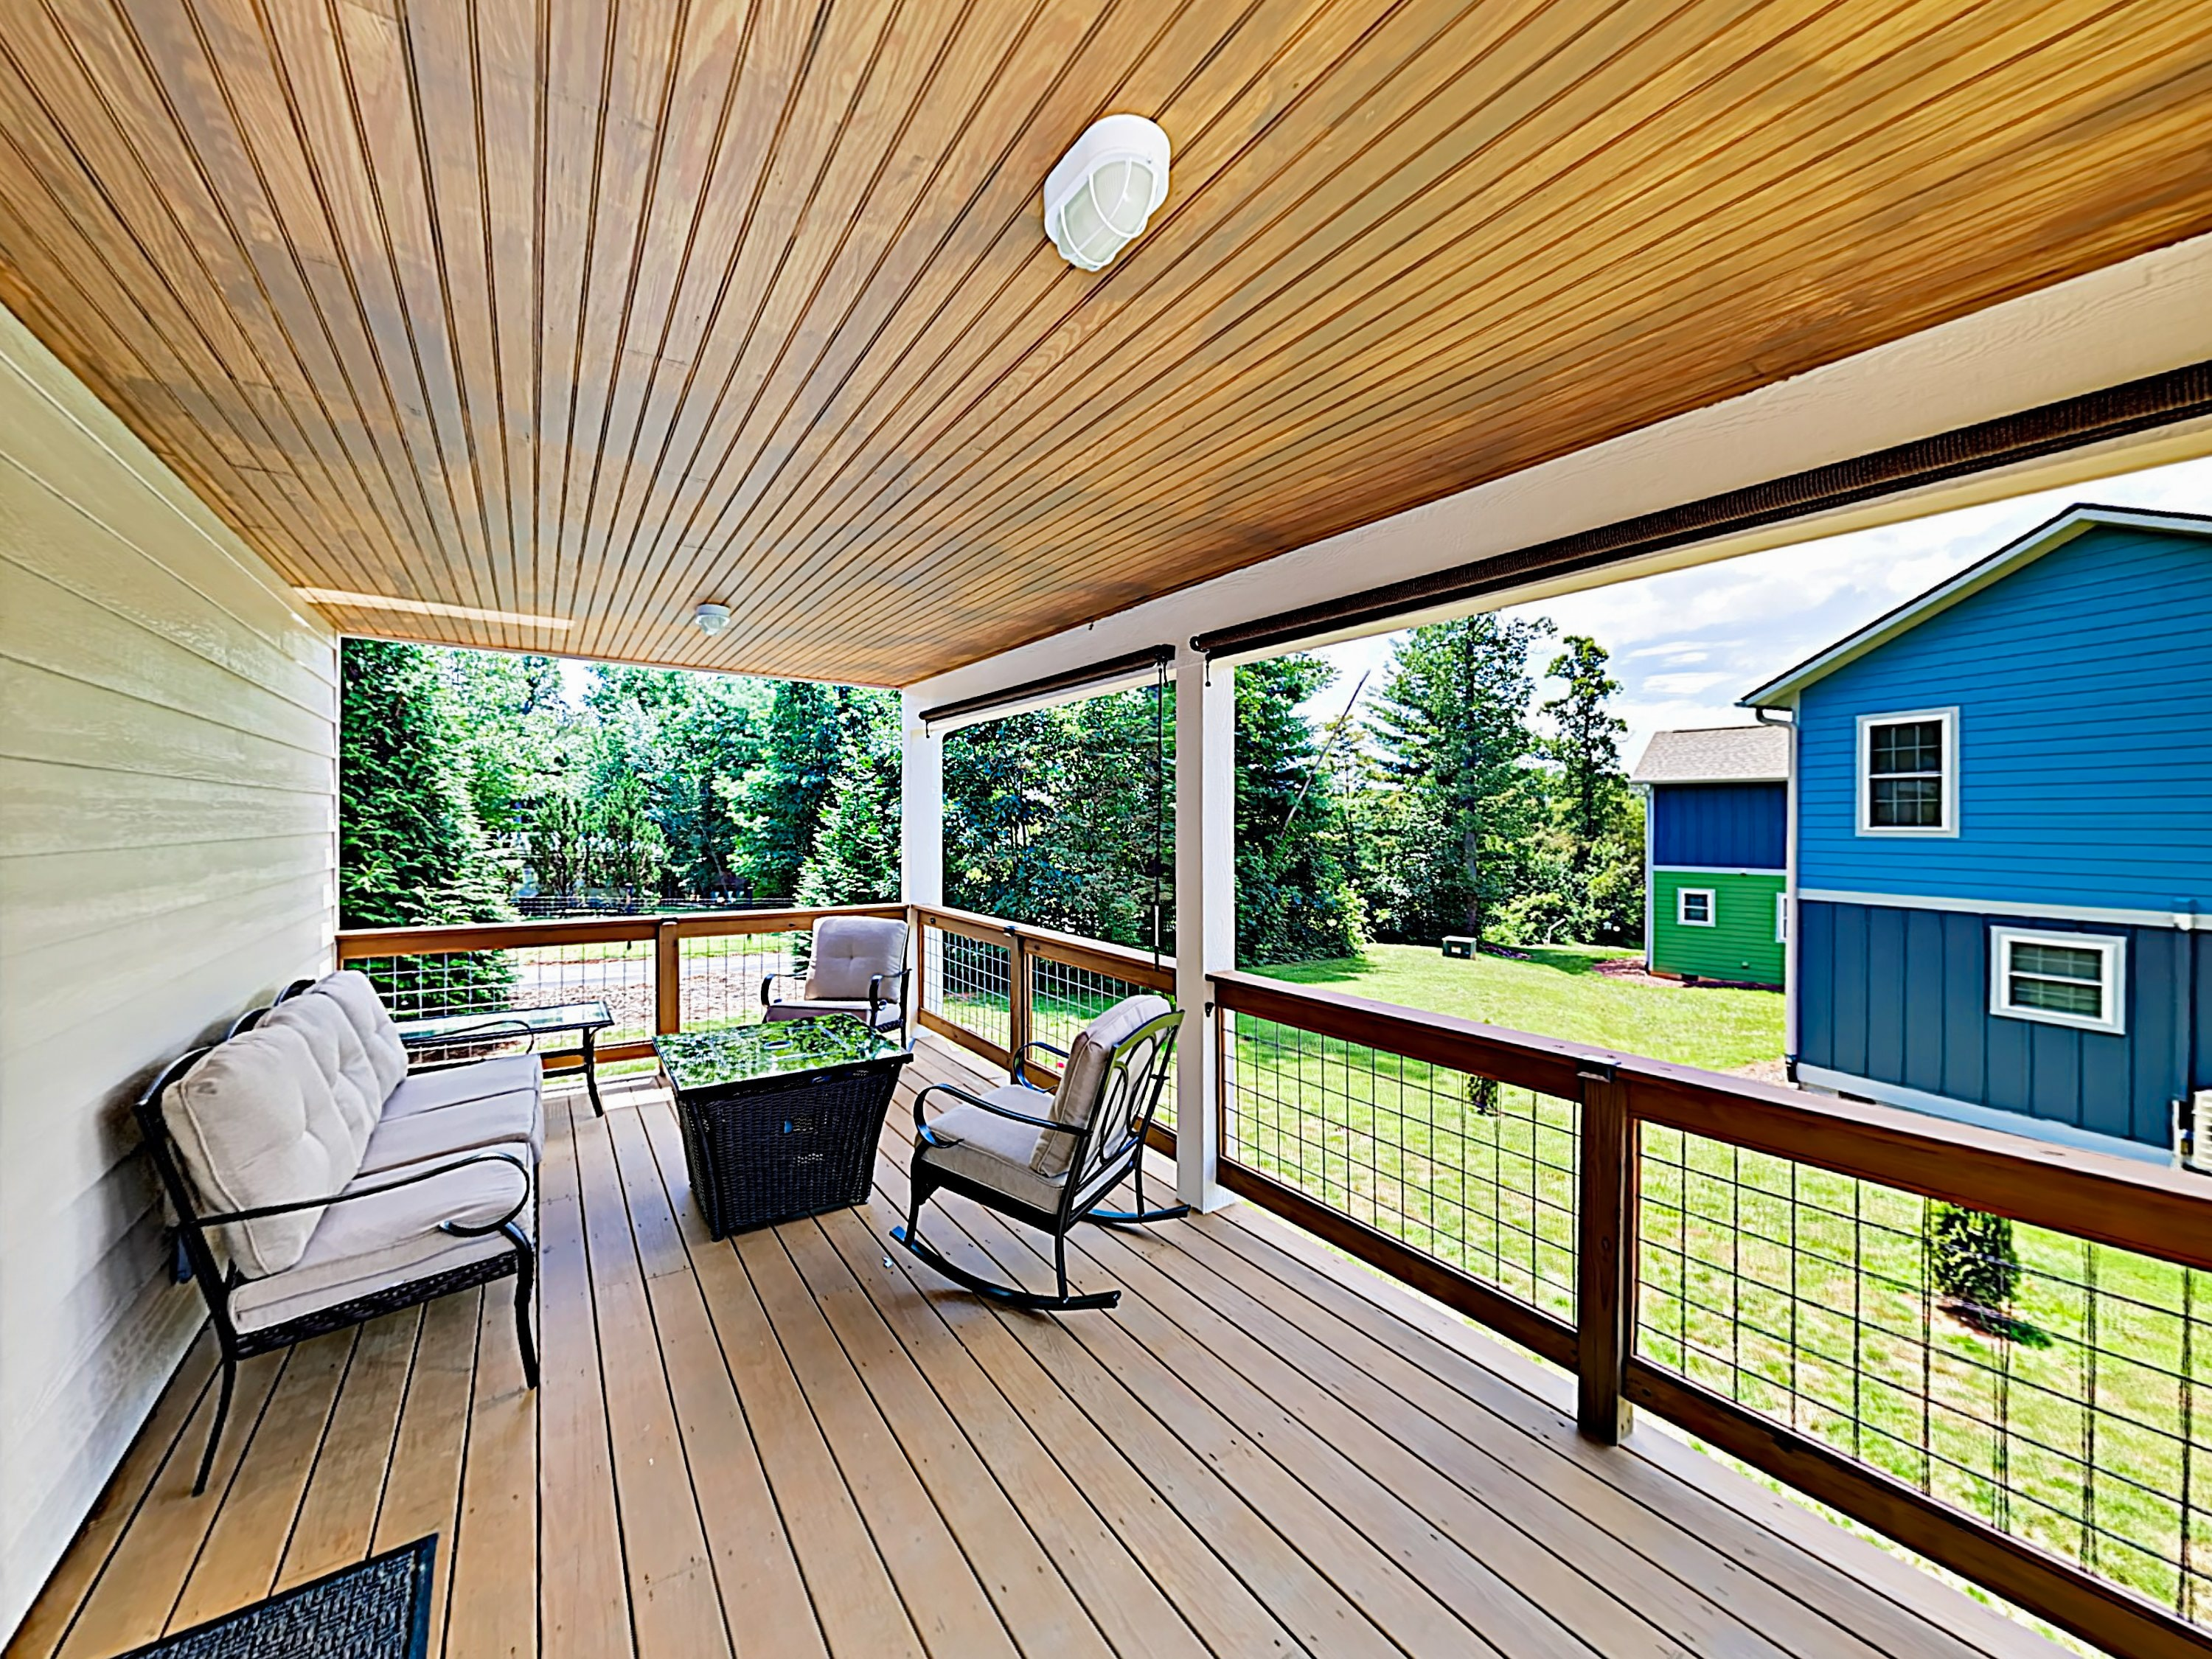 The covered deck is equipped with a cushioned seating area and gas firepit.